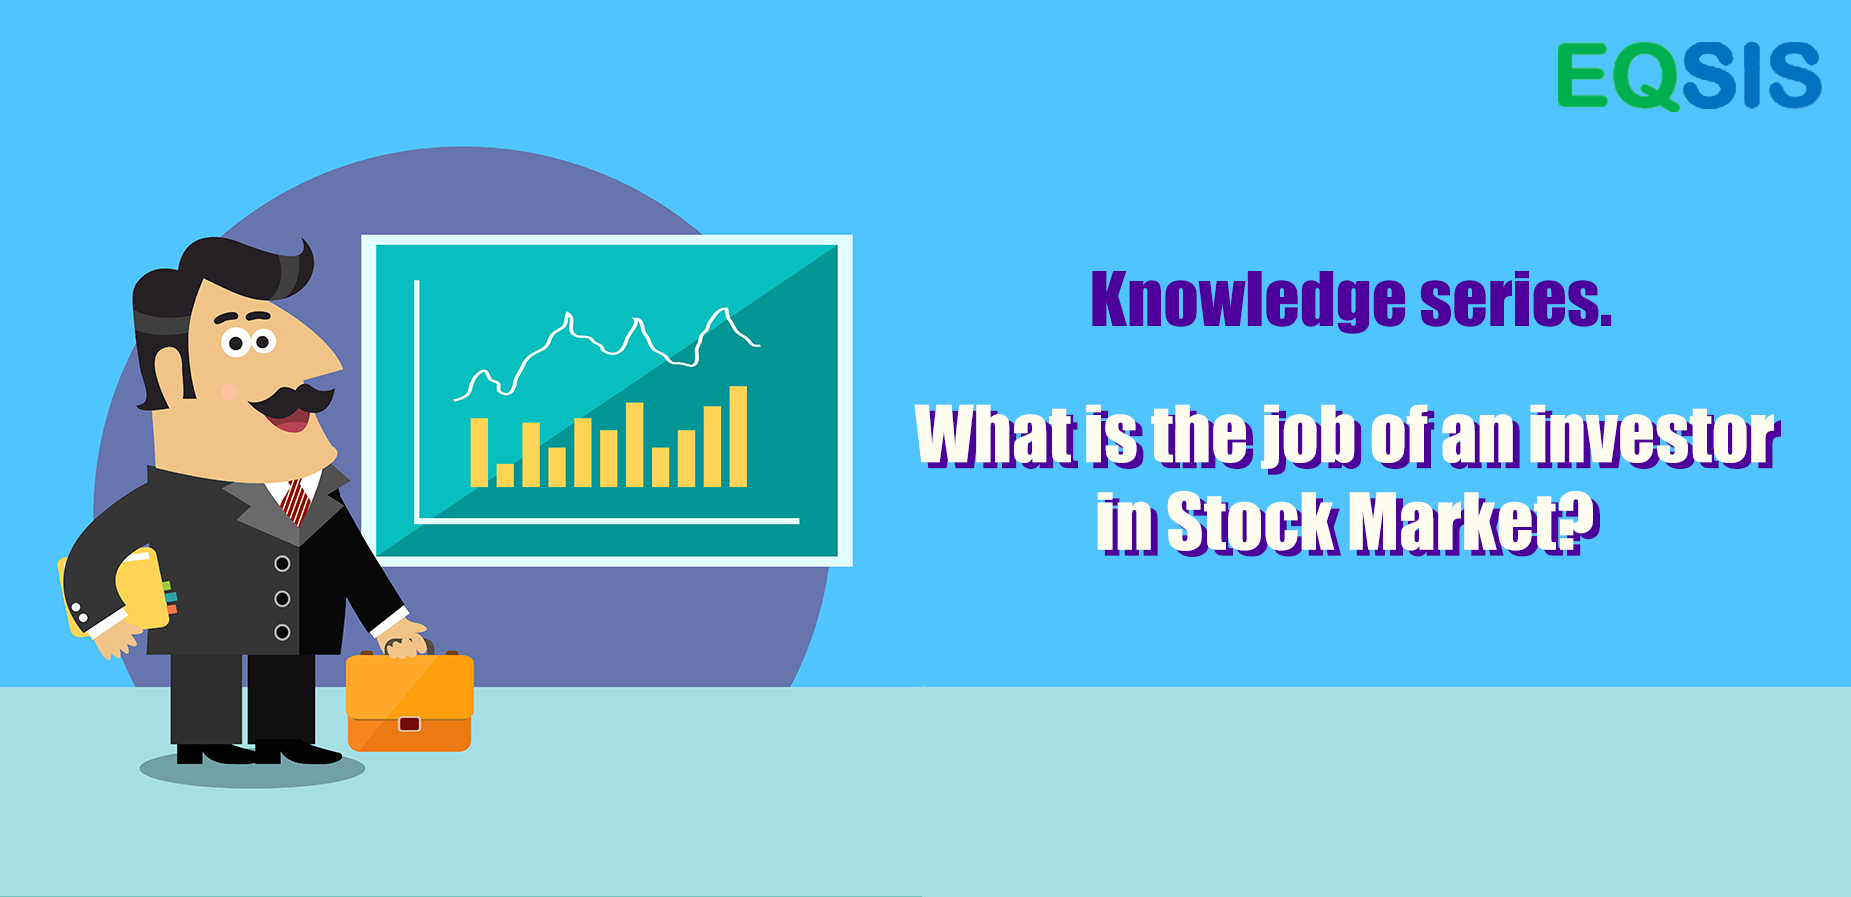 What is the job of an Investor In stock market